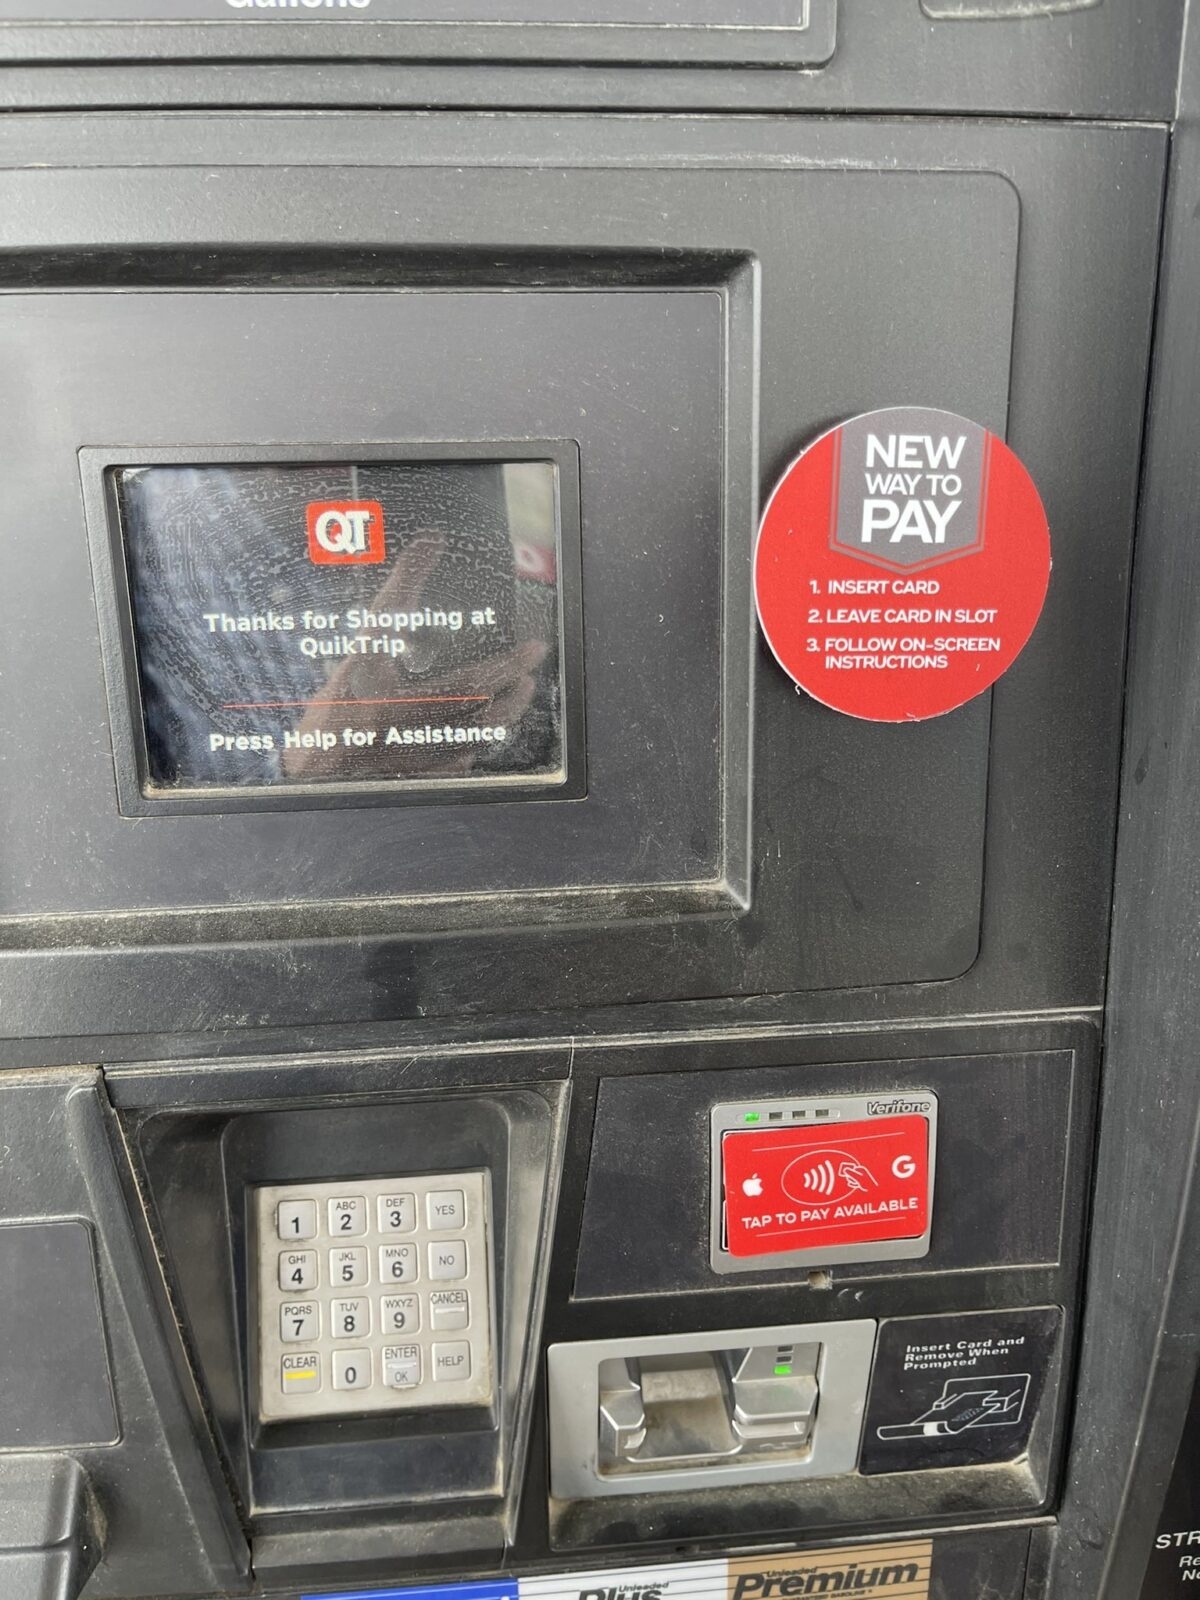 Apple Pay support at QuikTrip gas pump